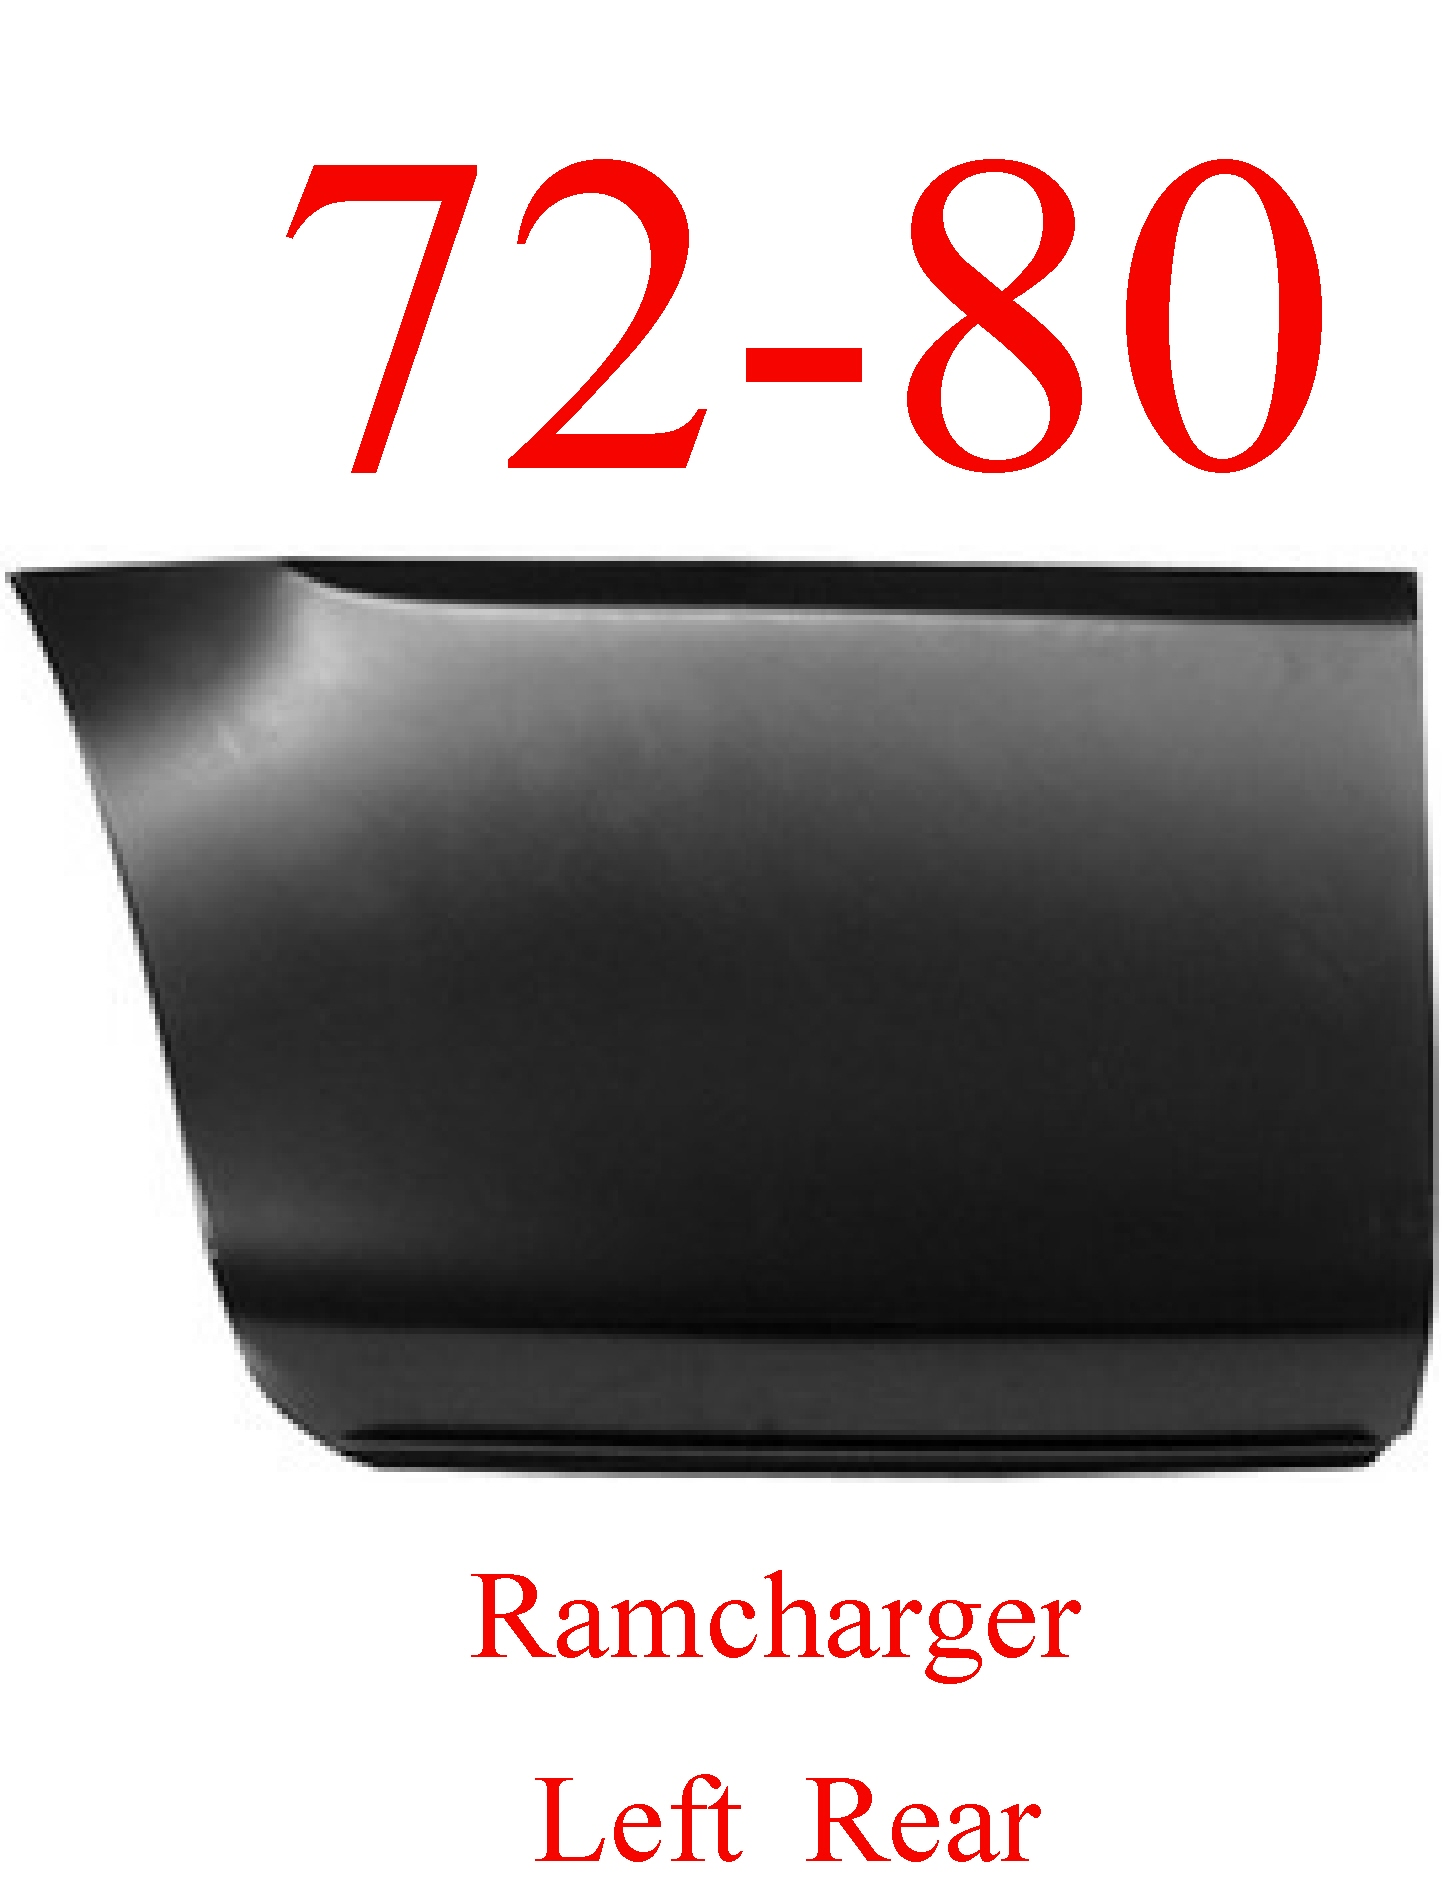 72-80 Dodge Ramcharger Left Rear Lower Bed Panel